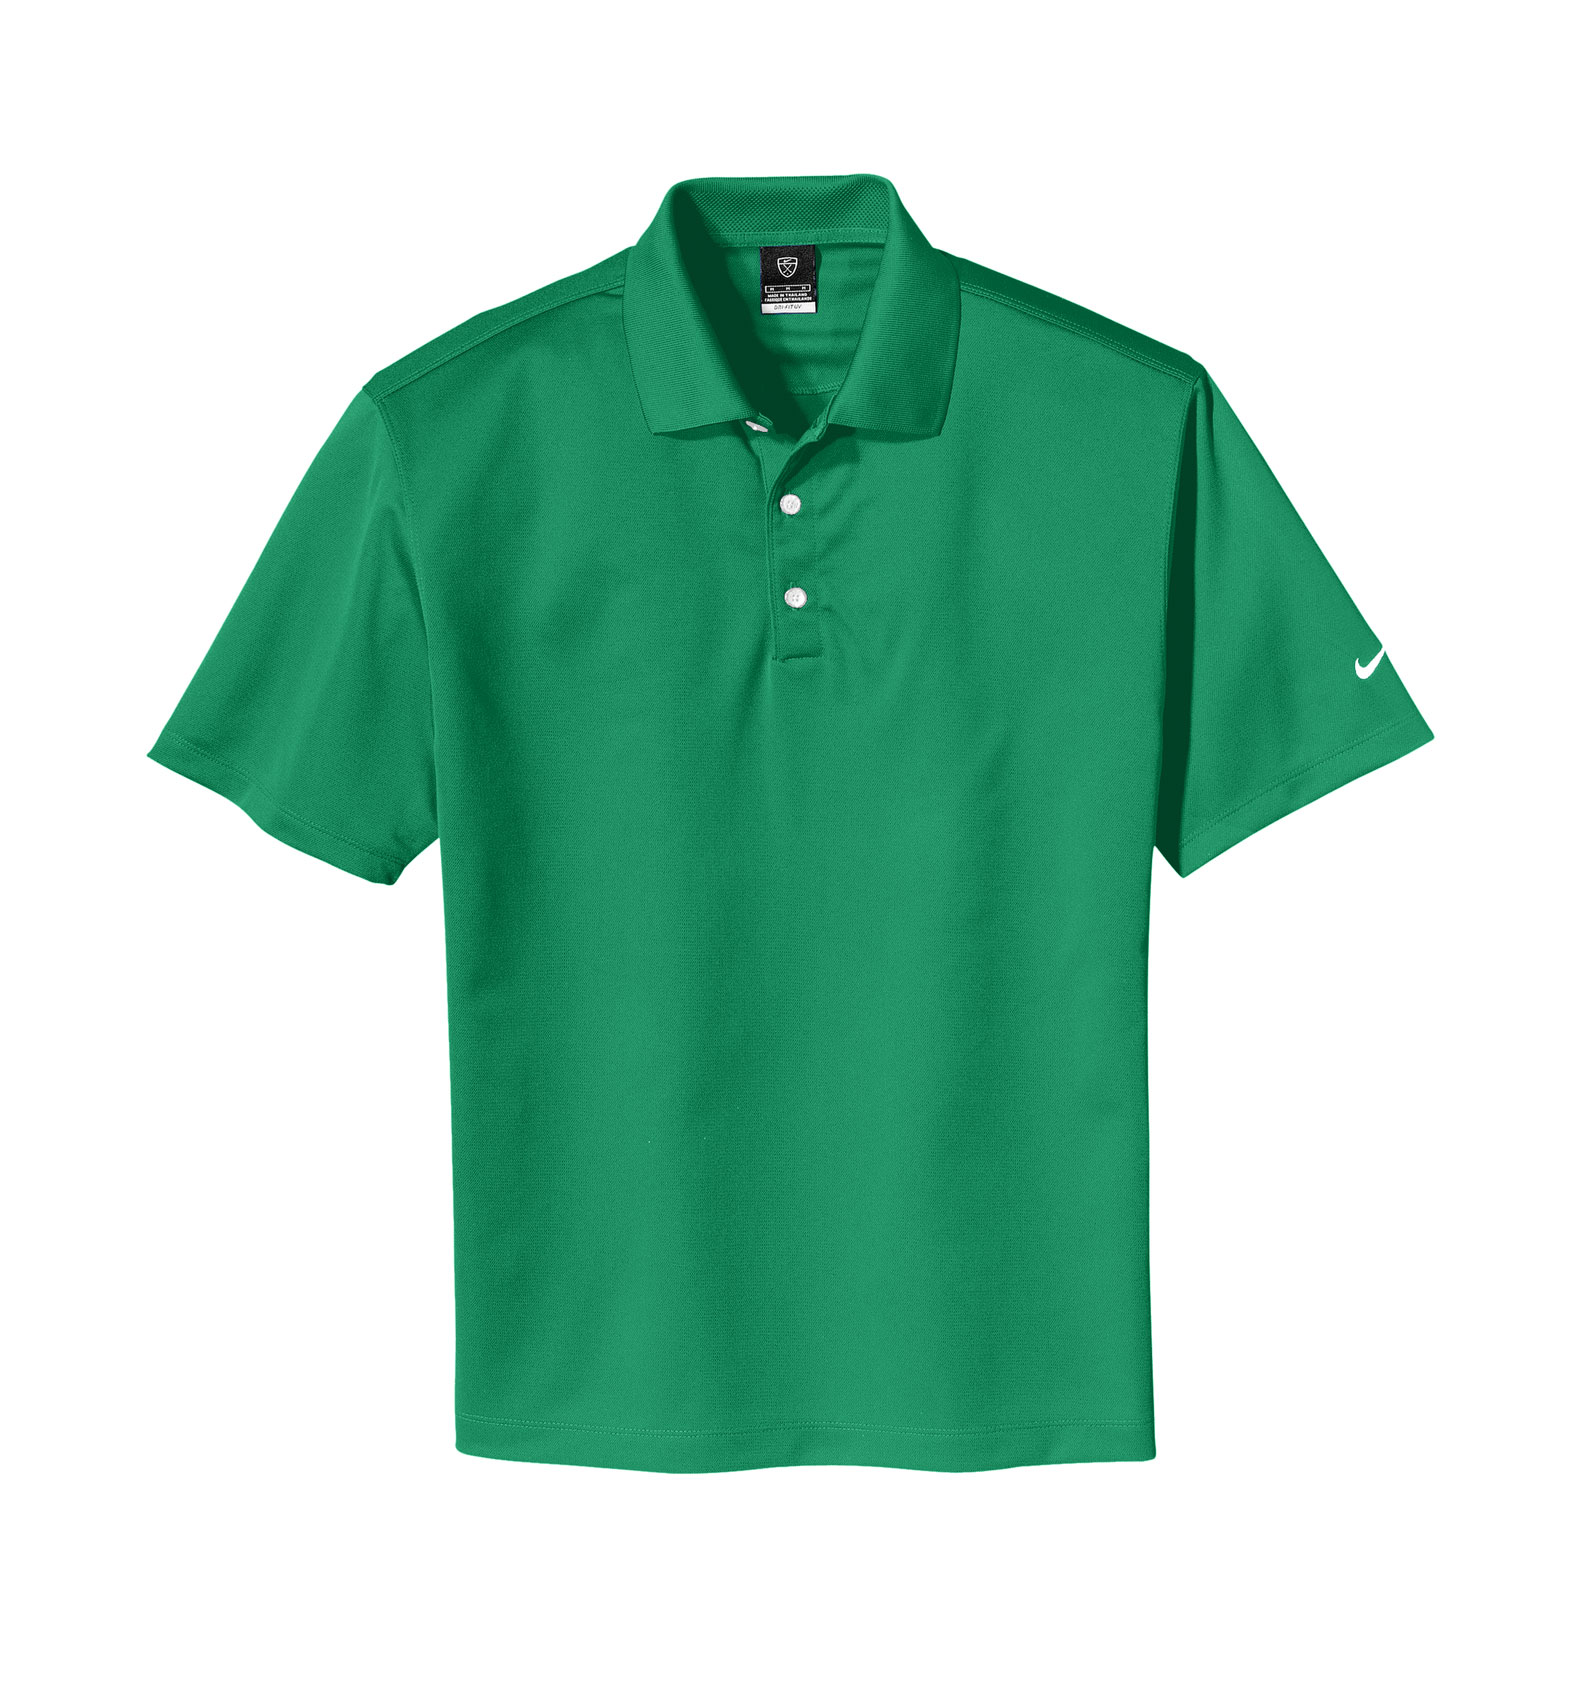 Mens Nike Golf Tech Dri-Fit Polo